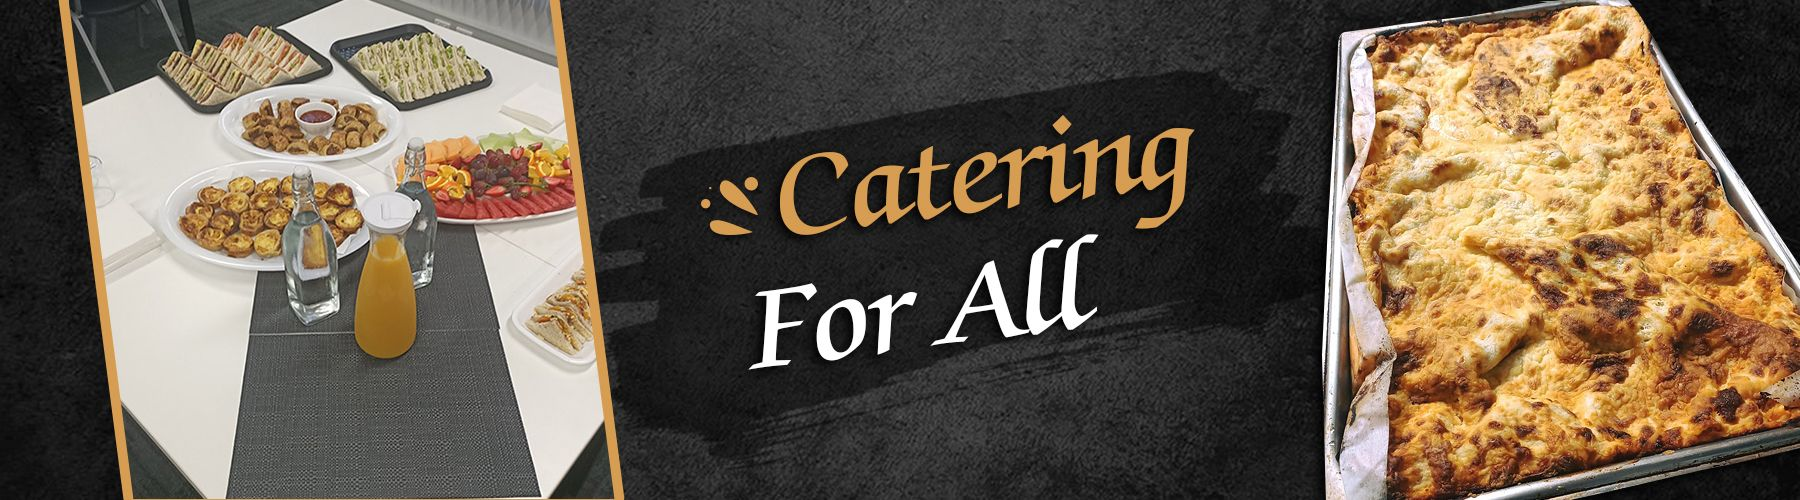 Featured Images - Catering for all